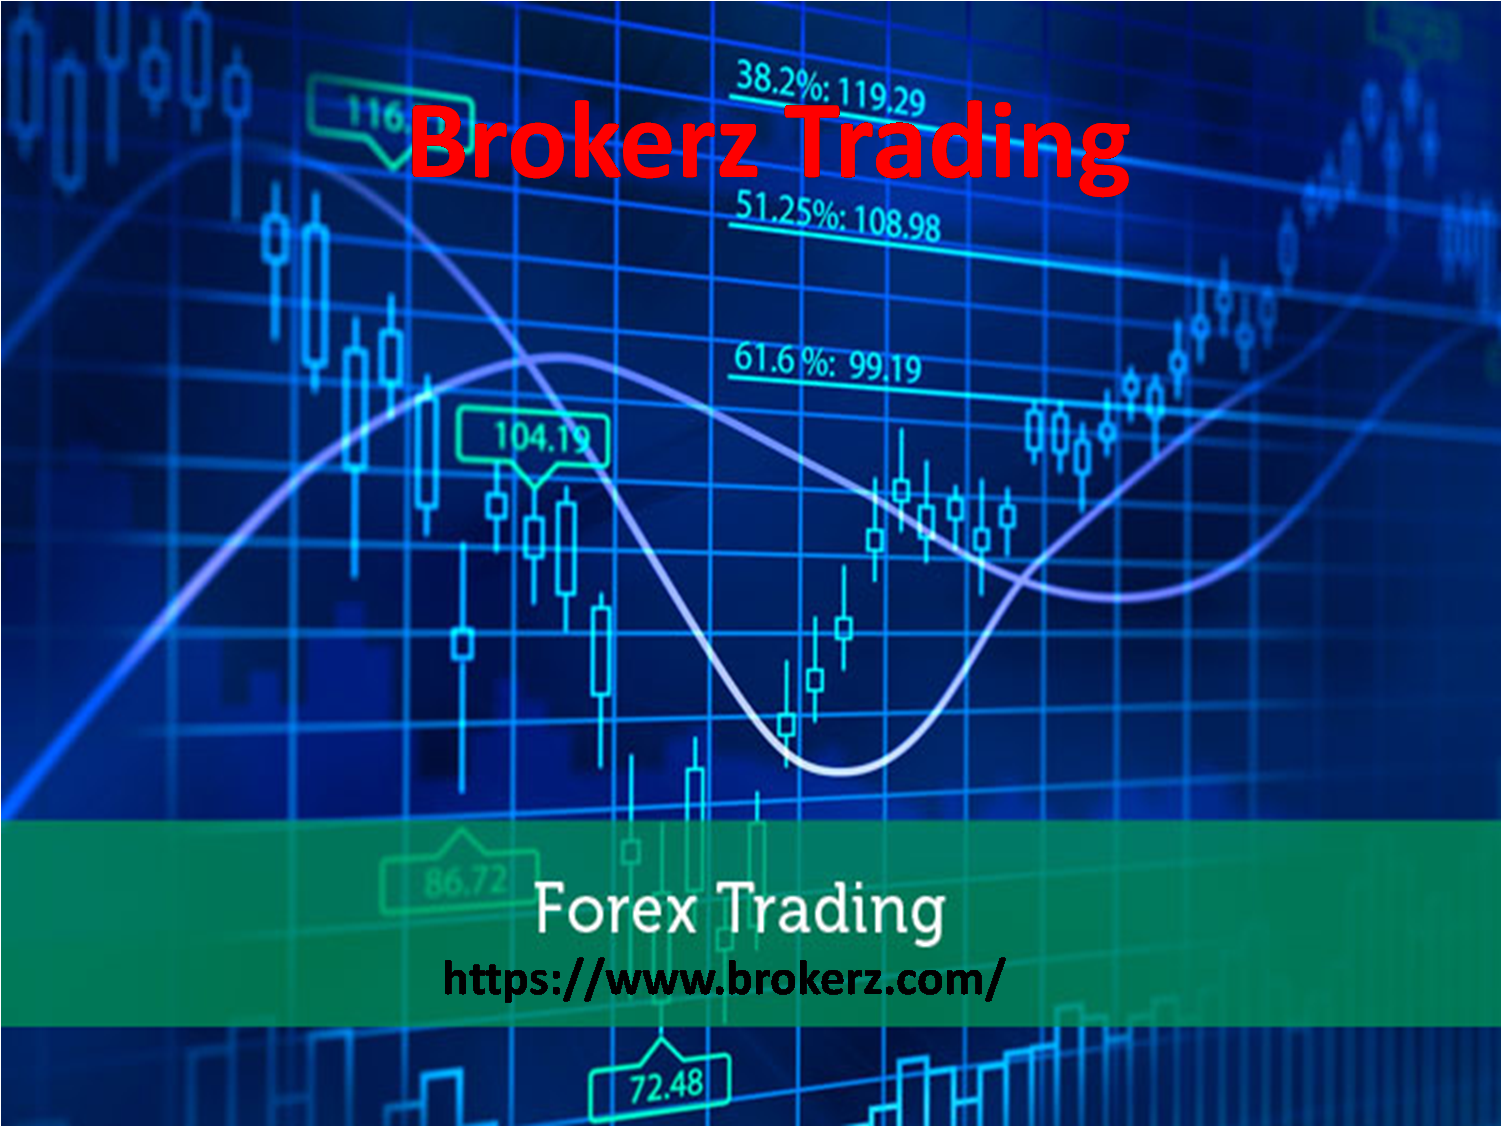 Brokerz Trading Has Discussed About